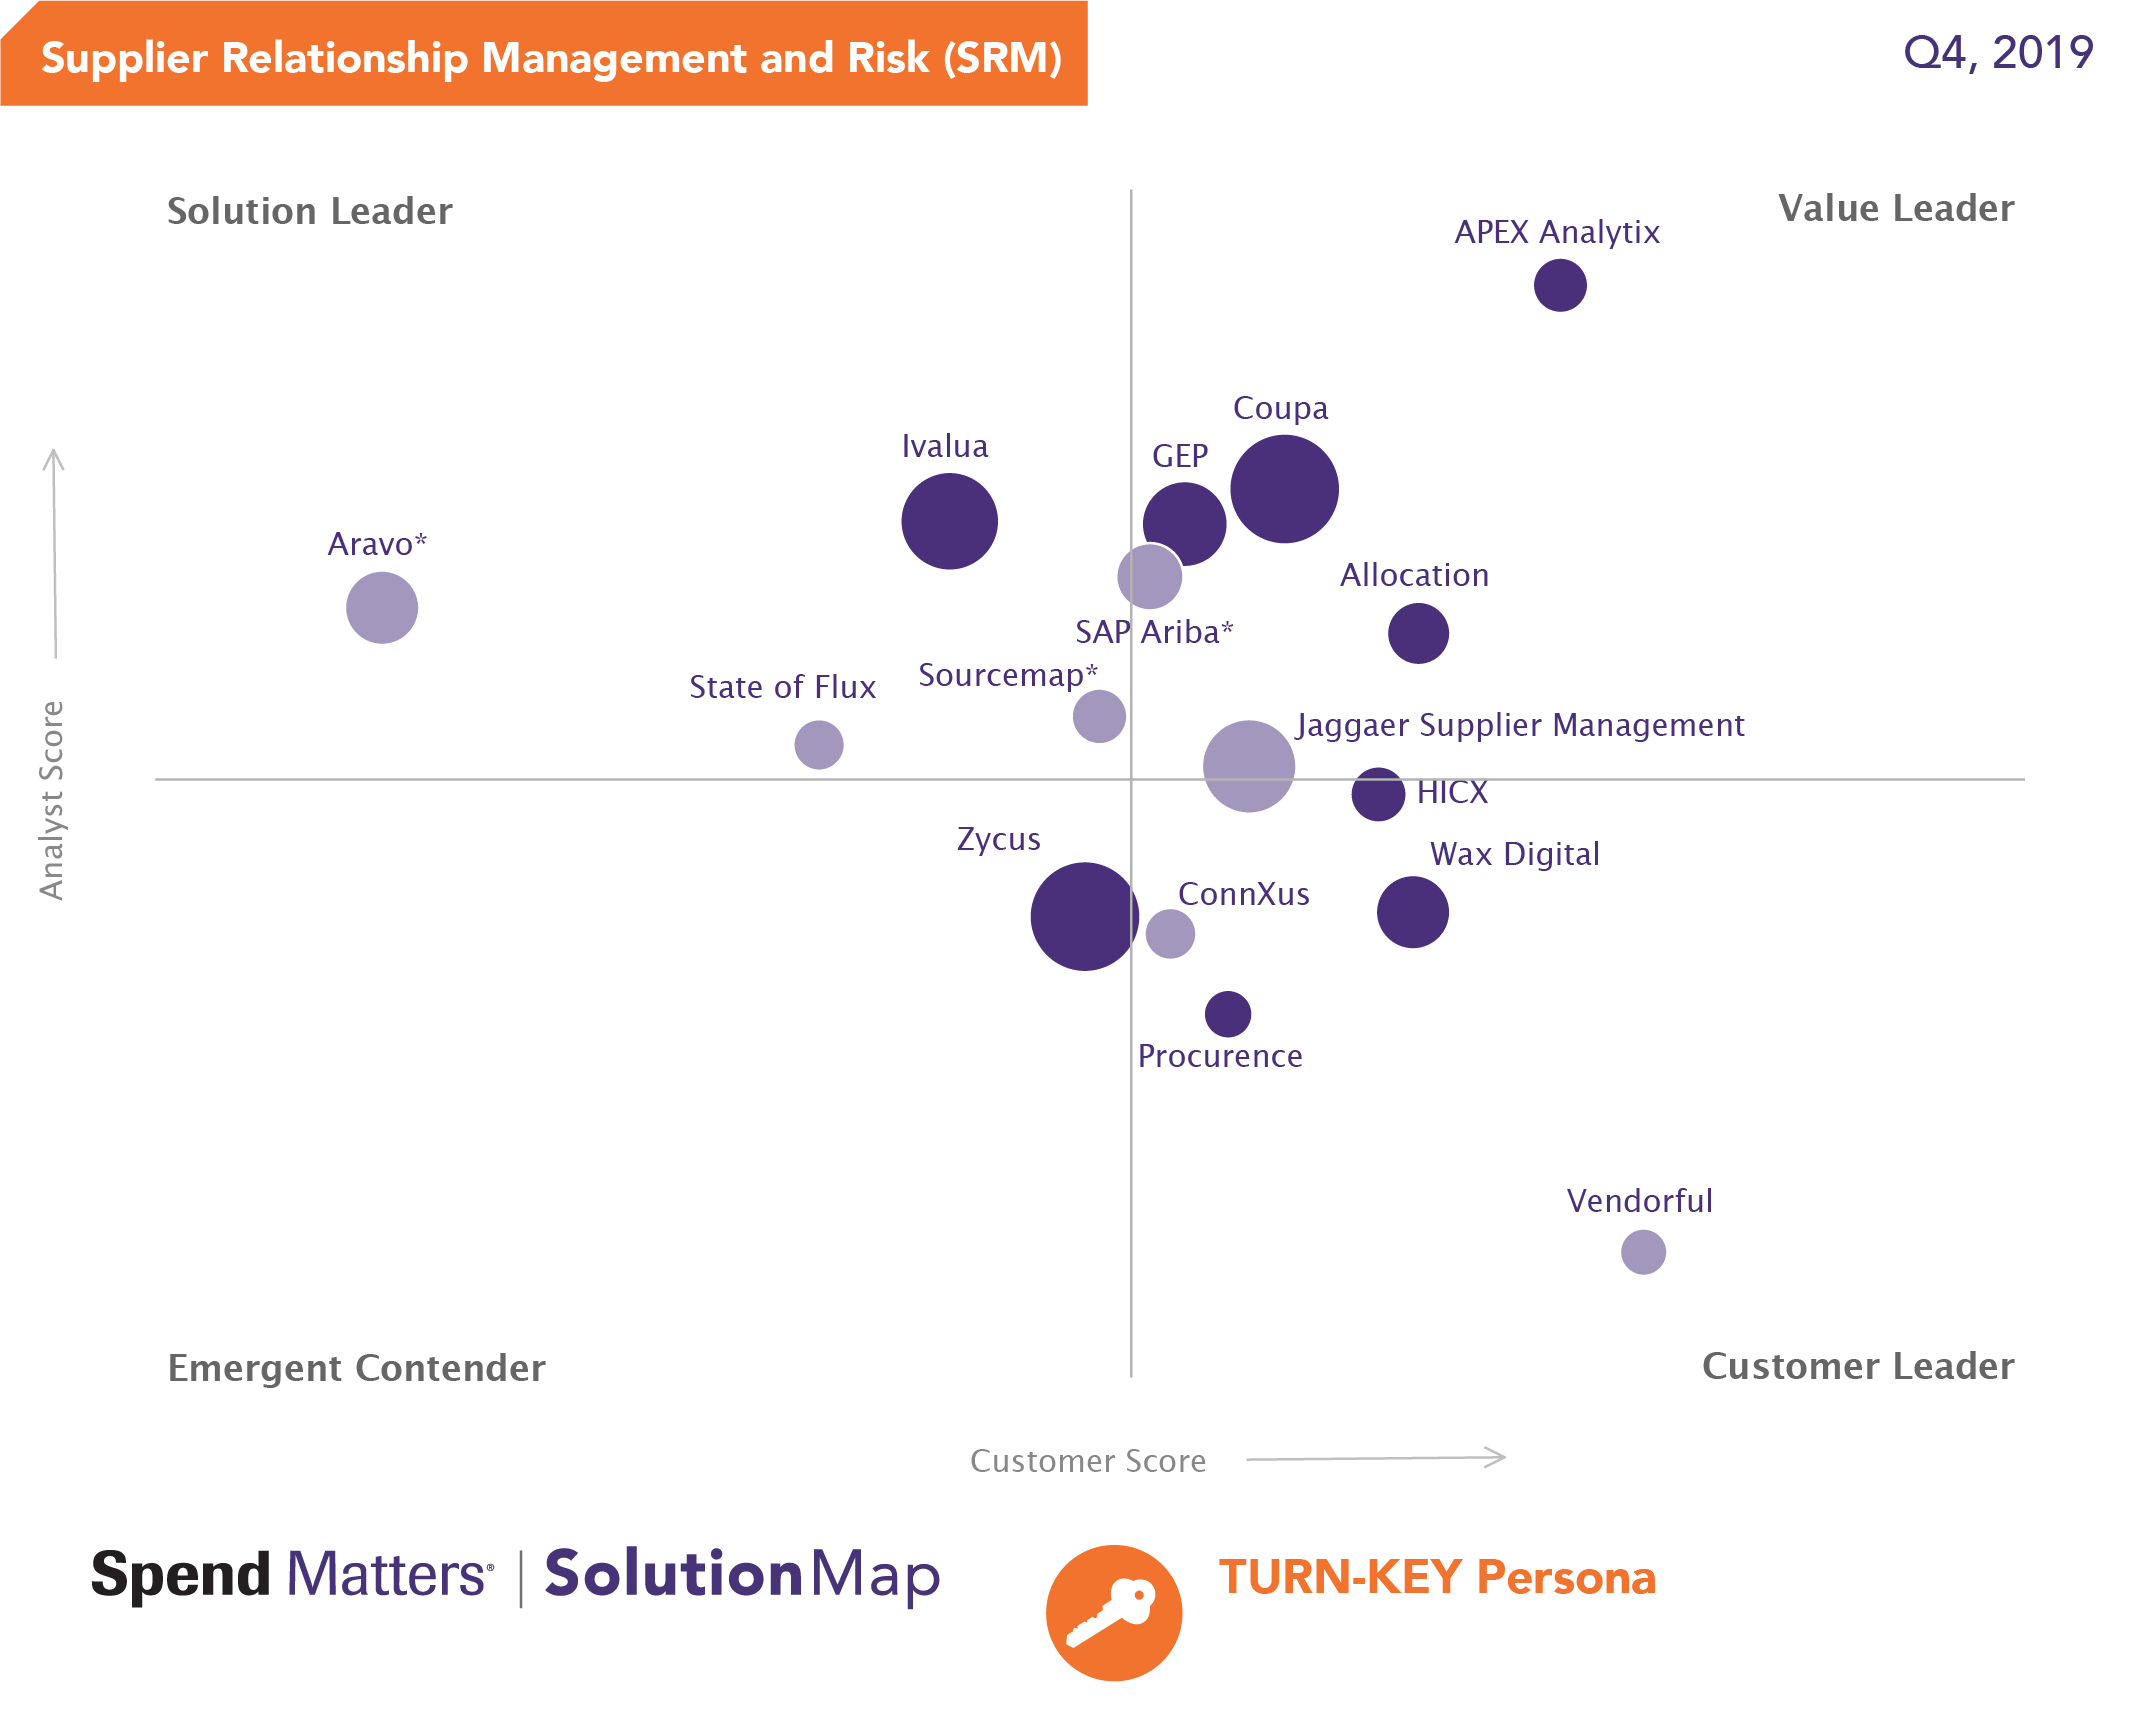 Spend Matters SolutionMap of Supplier Relationship Management and Risk